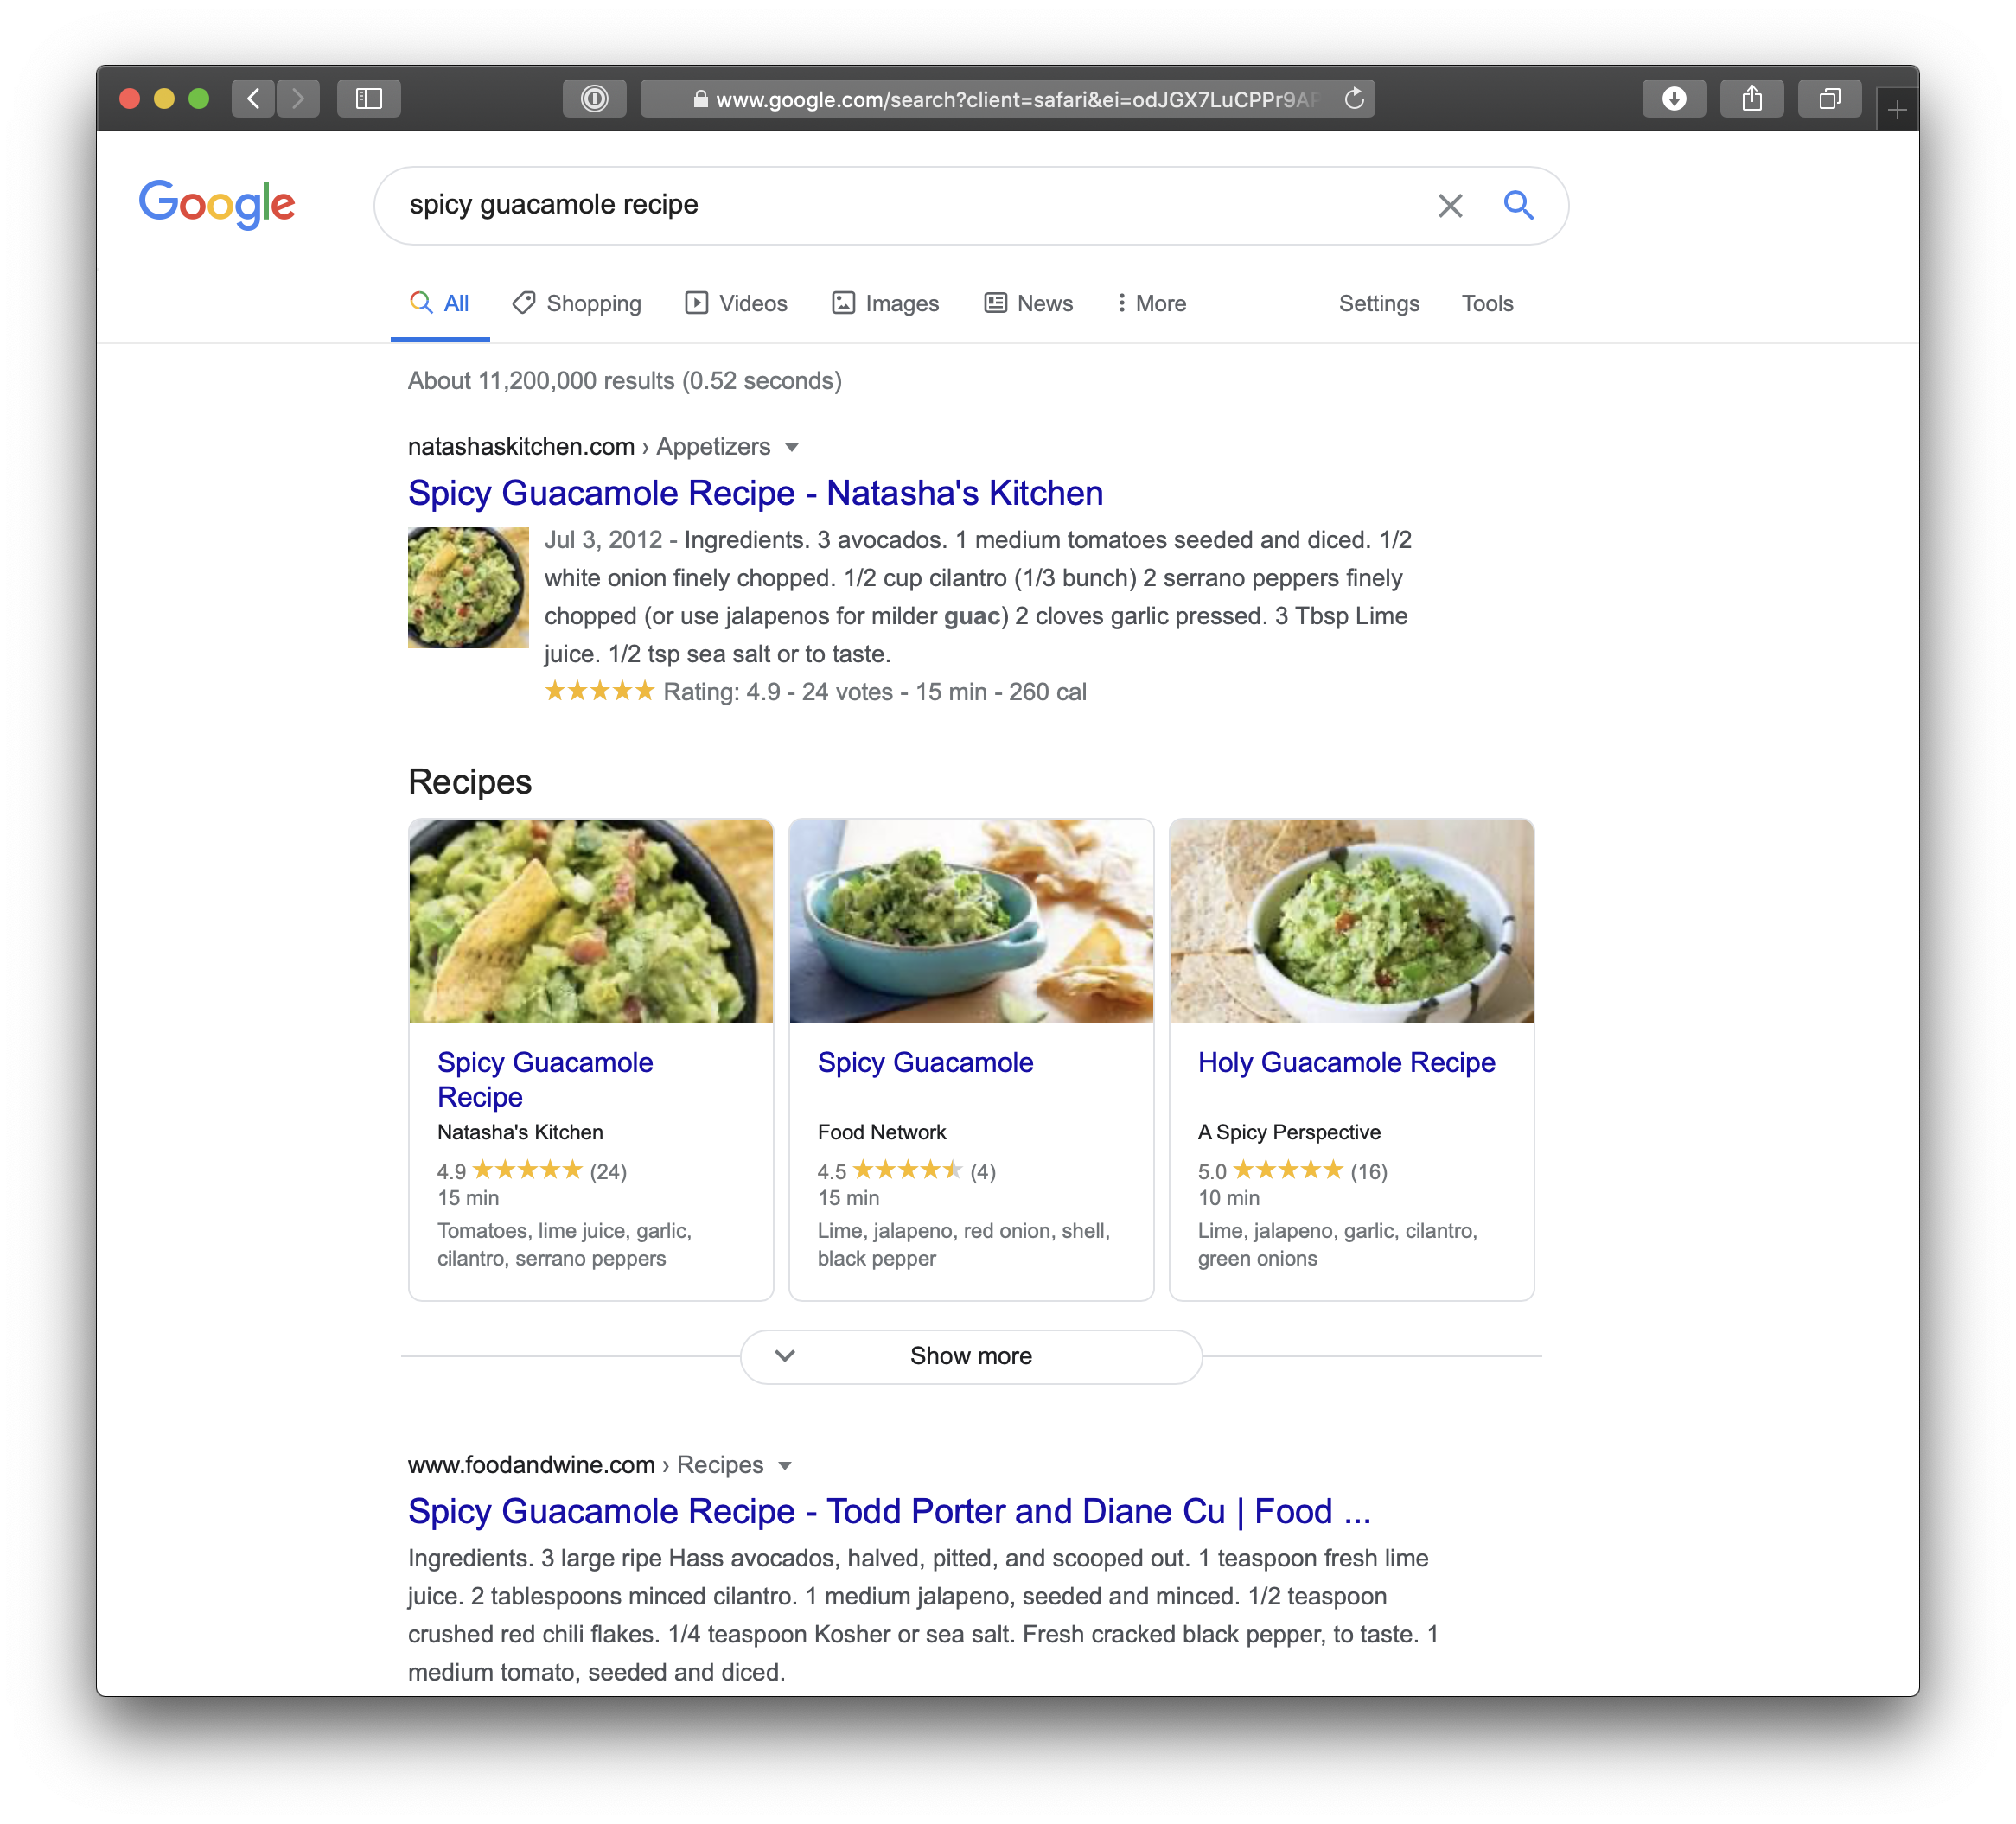 Showing search results for spicy guacamole recipes where a row of three recipes from different sites is at the top of the list.